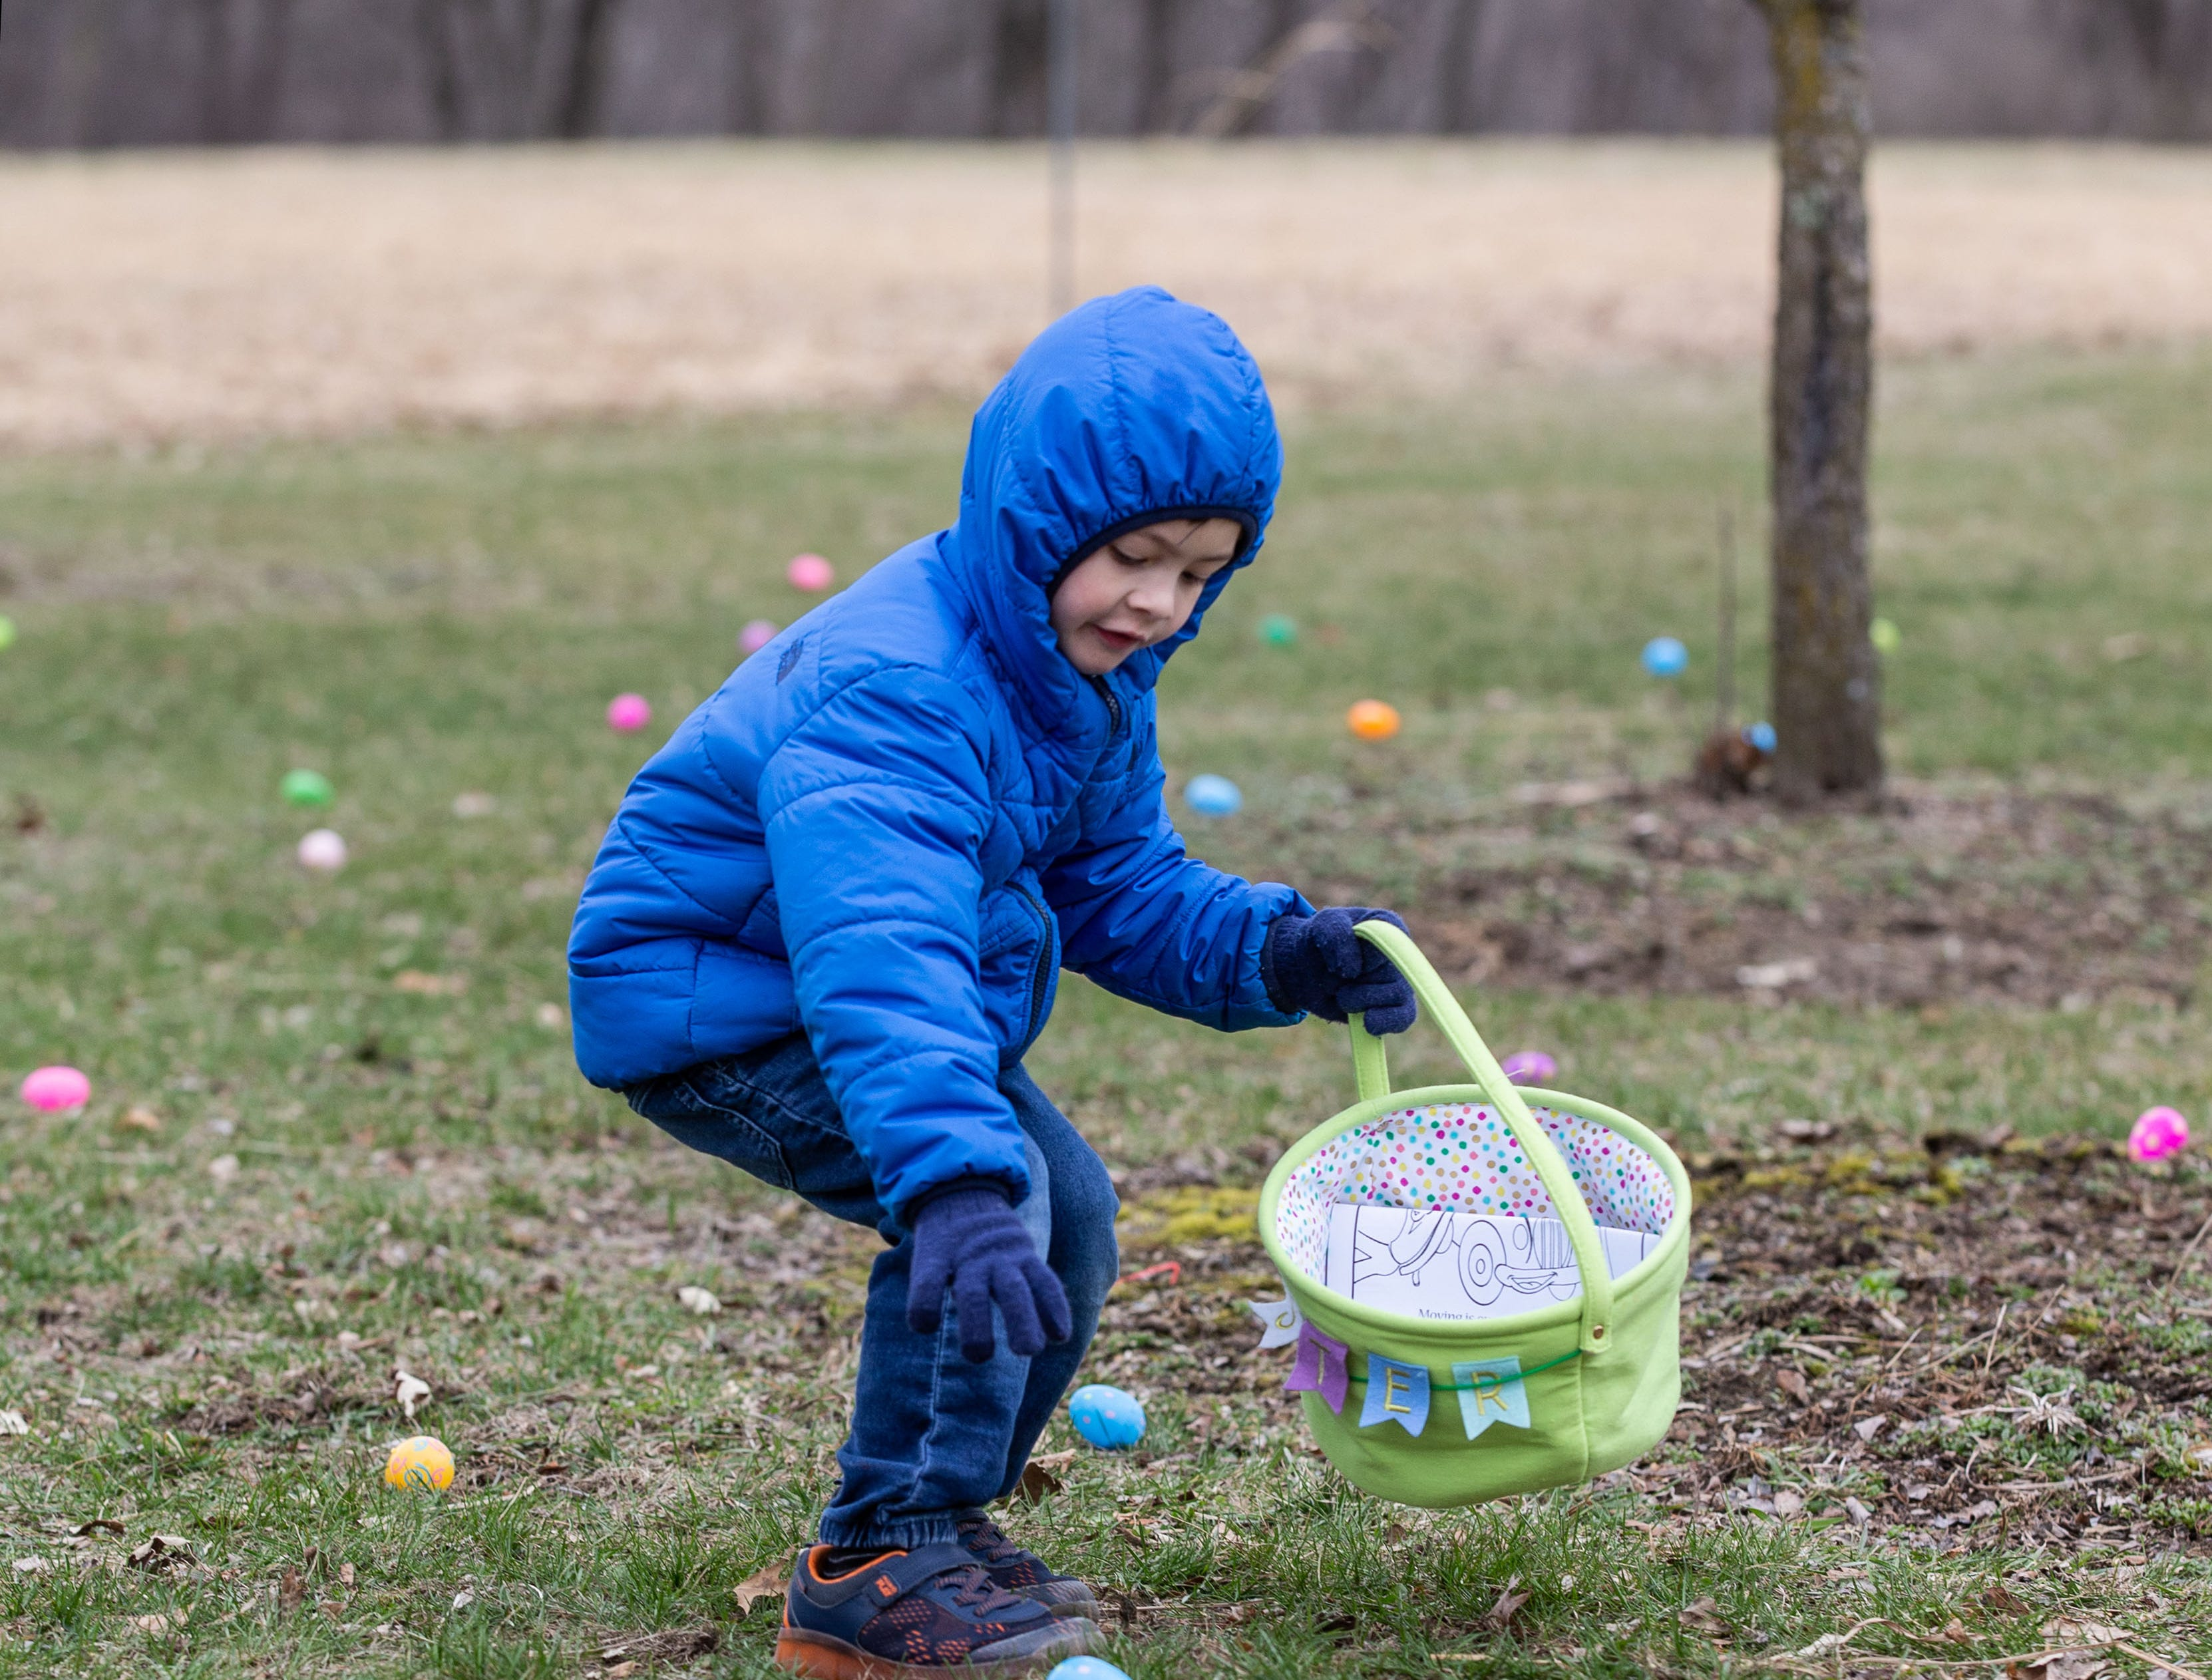 Five-year-old Benjamin Trautner of Menomonee Falls gathers eggs during the annual Easter Extravaganza egg hunt in Lisbon Community Park on Saturday, April 13, 2019. Sponsored by the Lisbon Park Department, the hunt features treats from area businesses and organizations, pictures with the Easter Bunny, local emergency response vehicles and more.